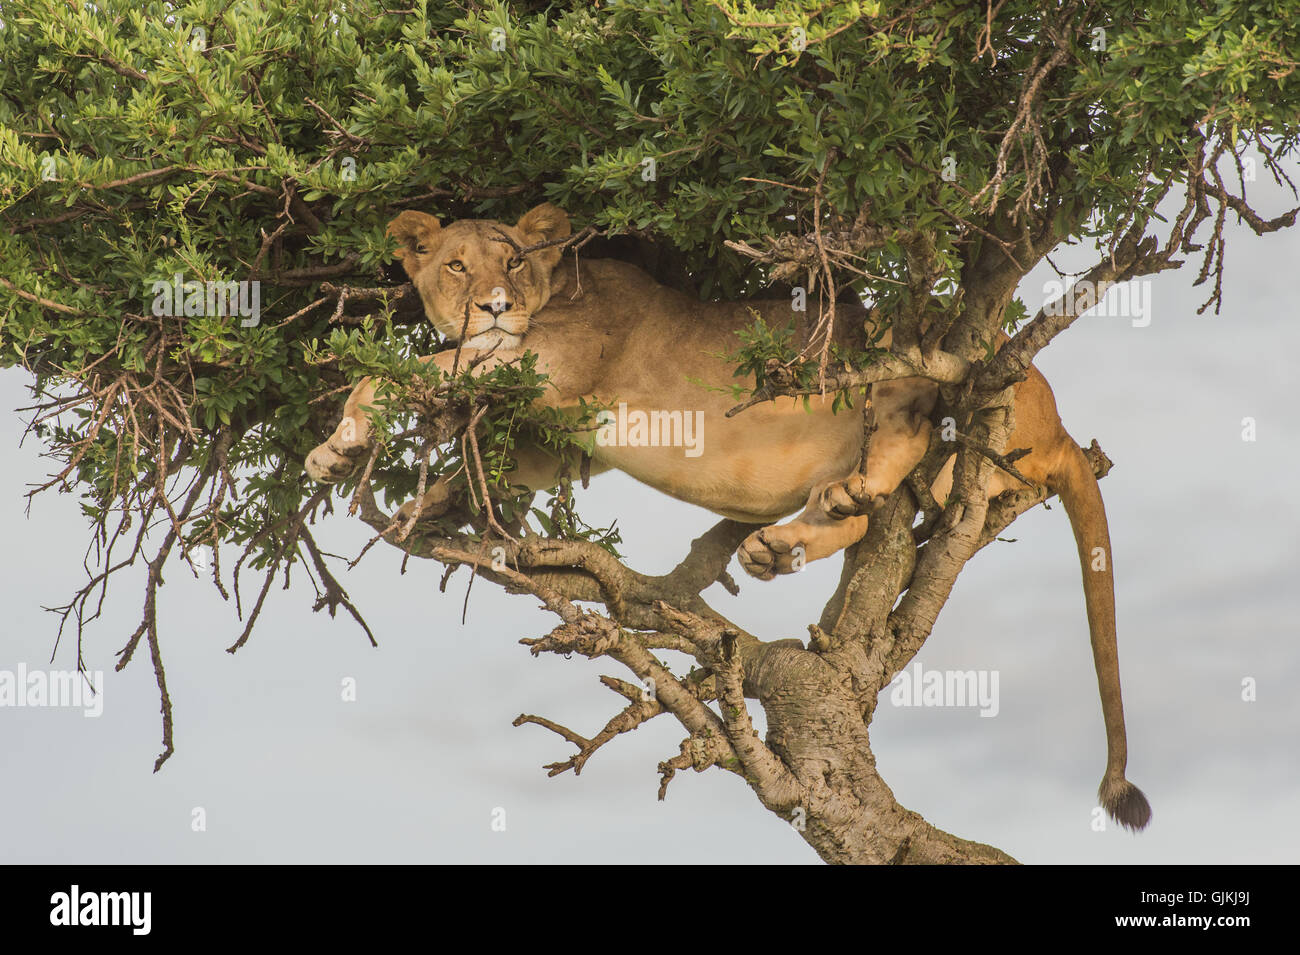 Lion in tree - Stock Image